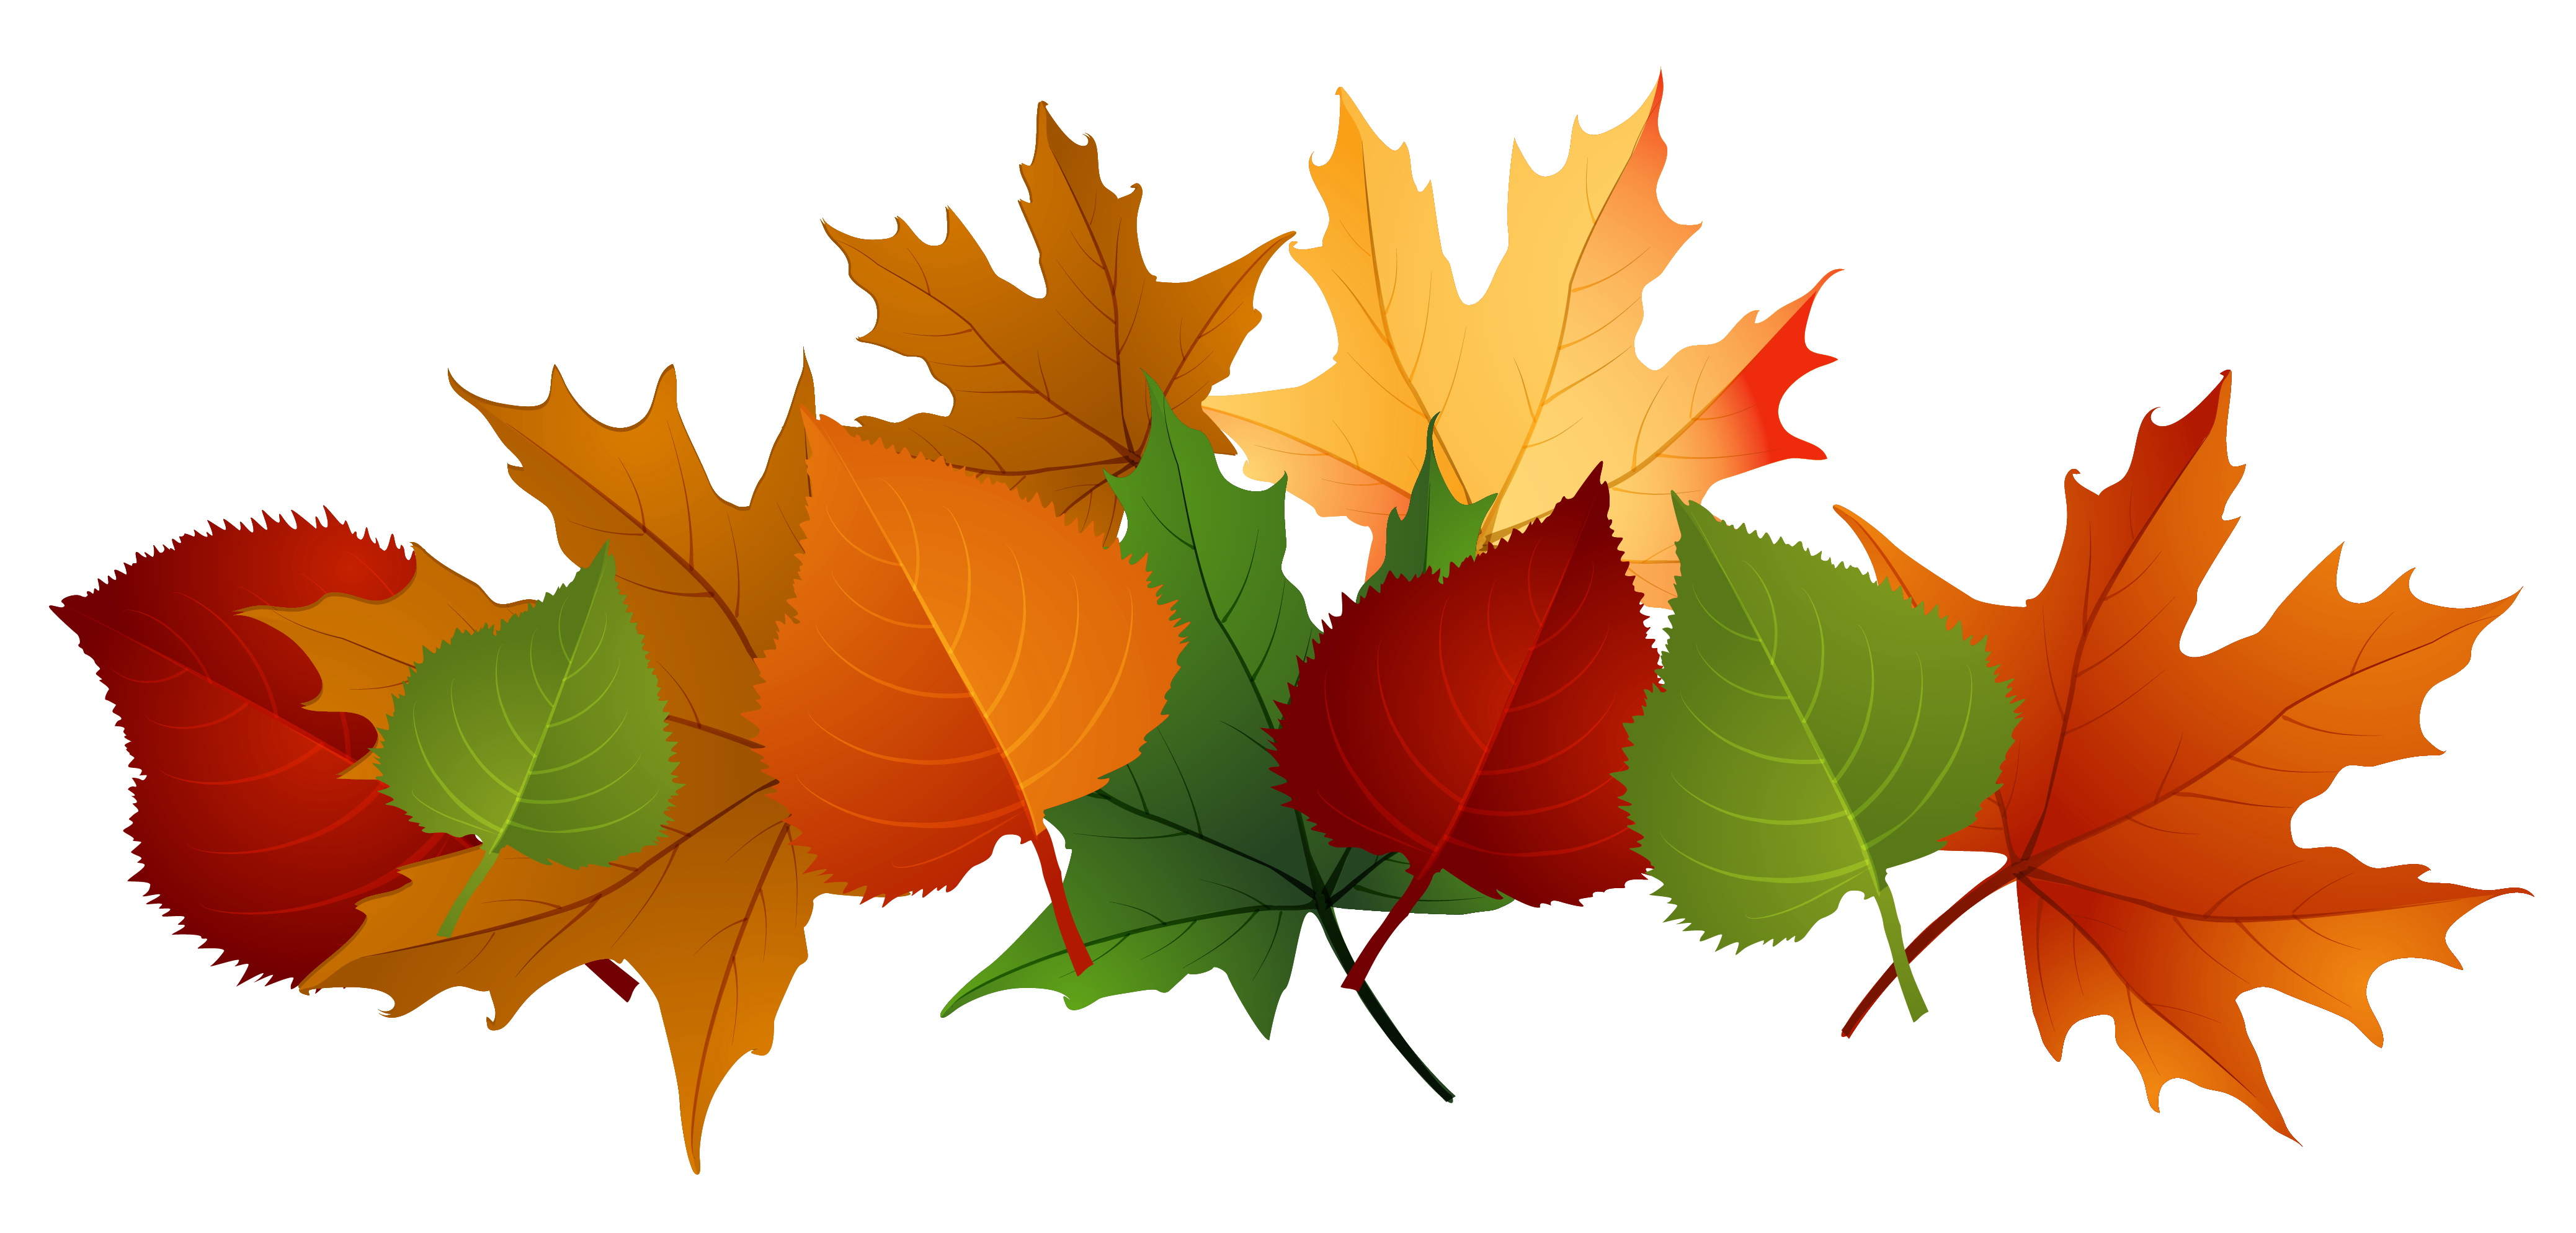 Fall leaves fall clip art . - Autumn Leaves Clip Art